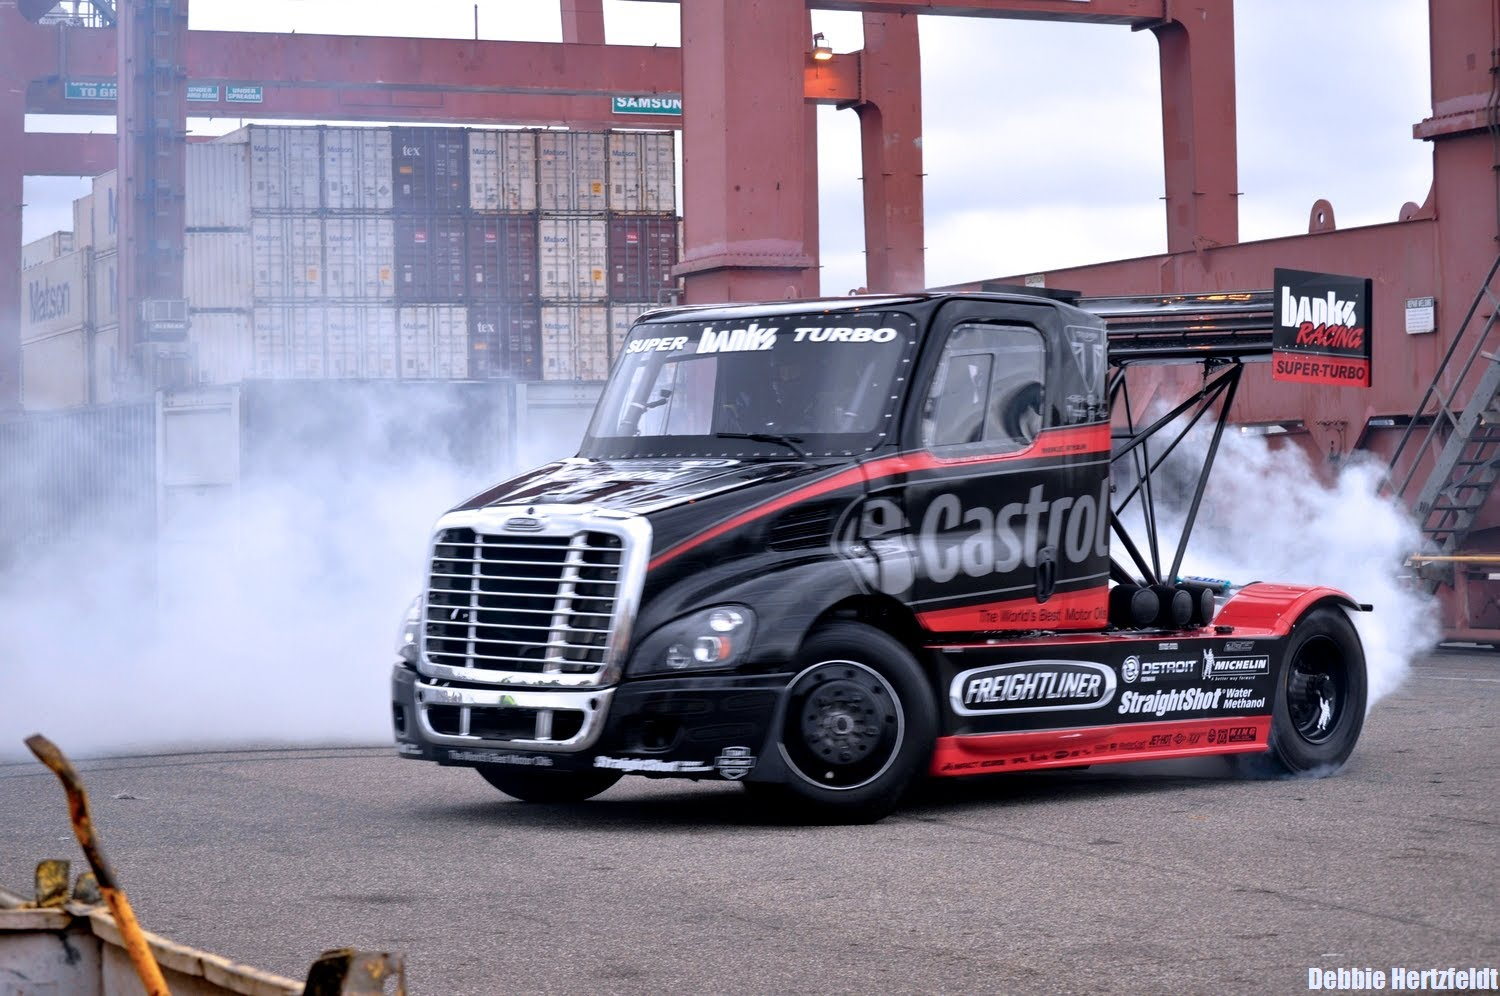 SIZE MATTERS 2 - Mike Ryan's Pikes Peak Castrol Oil Freightliner Race Truck